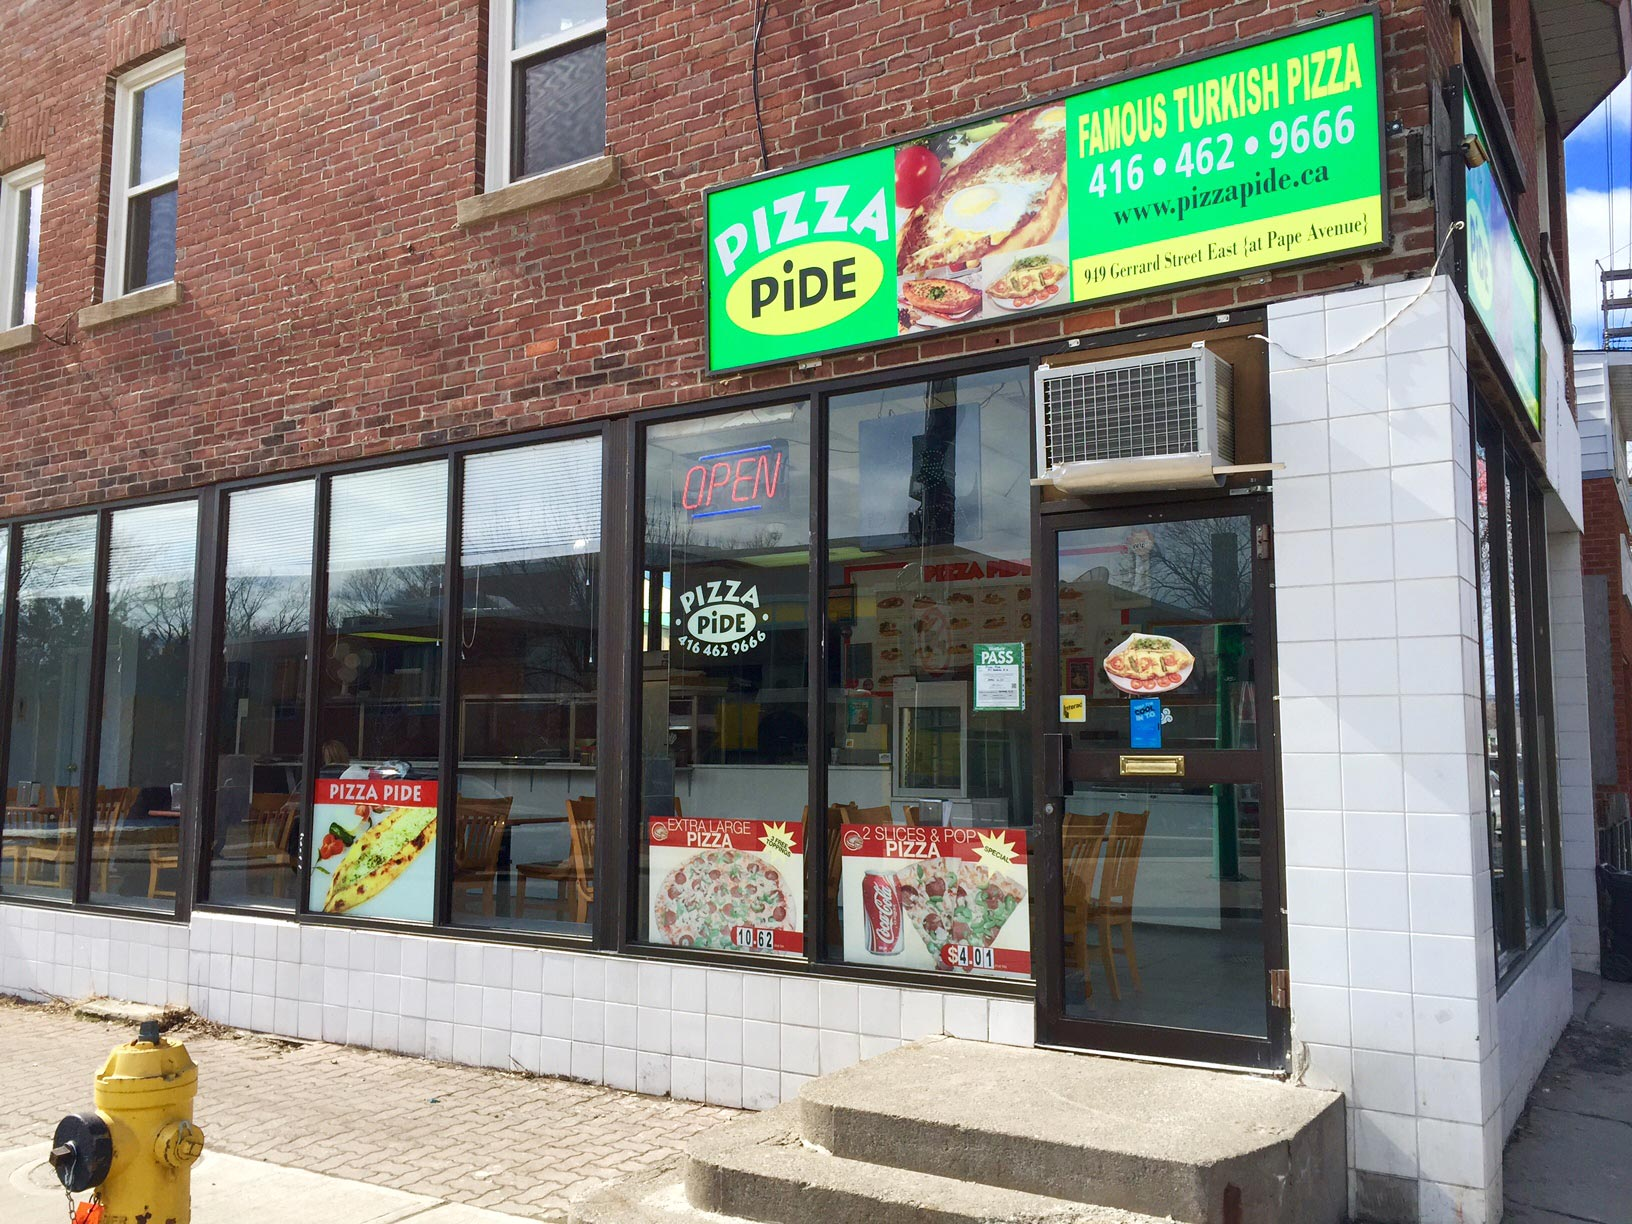 On Gerrard, just east of Pape, Pizza Pide is  the  no-nonsense spot for Turkish pizza. You clearly don't come here for the ambiance, after all.